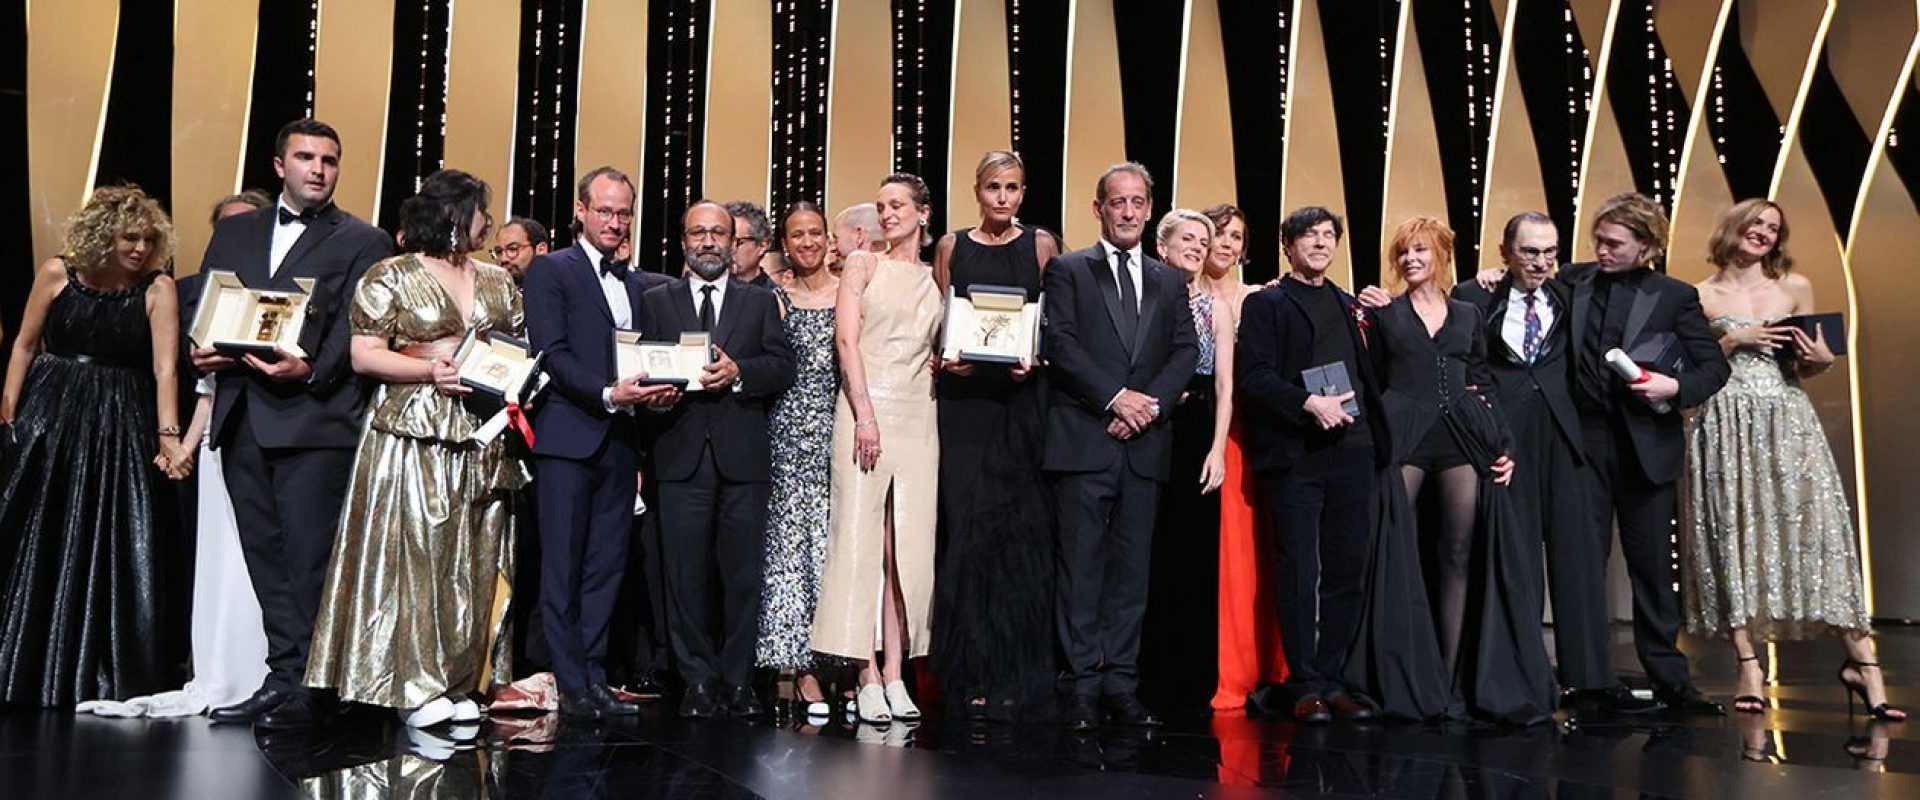 Cannes 2021 | The World Cinema is back - The Jury and the winners